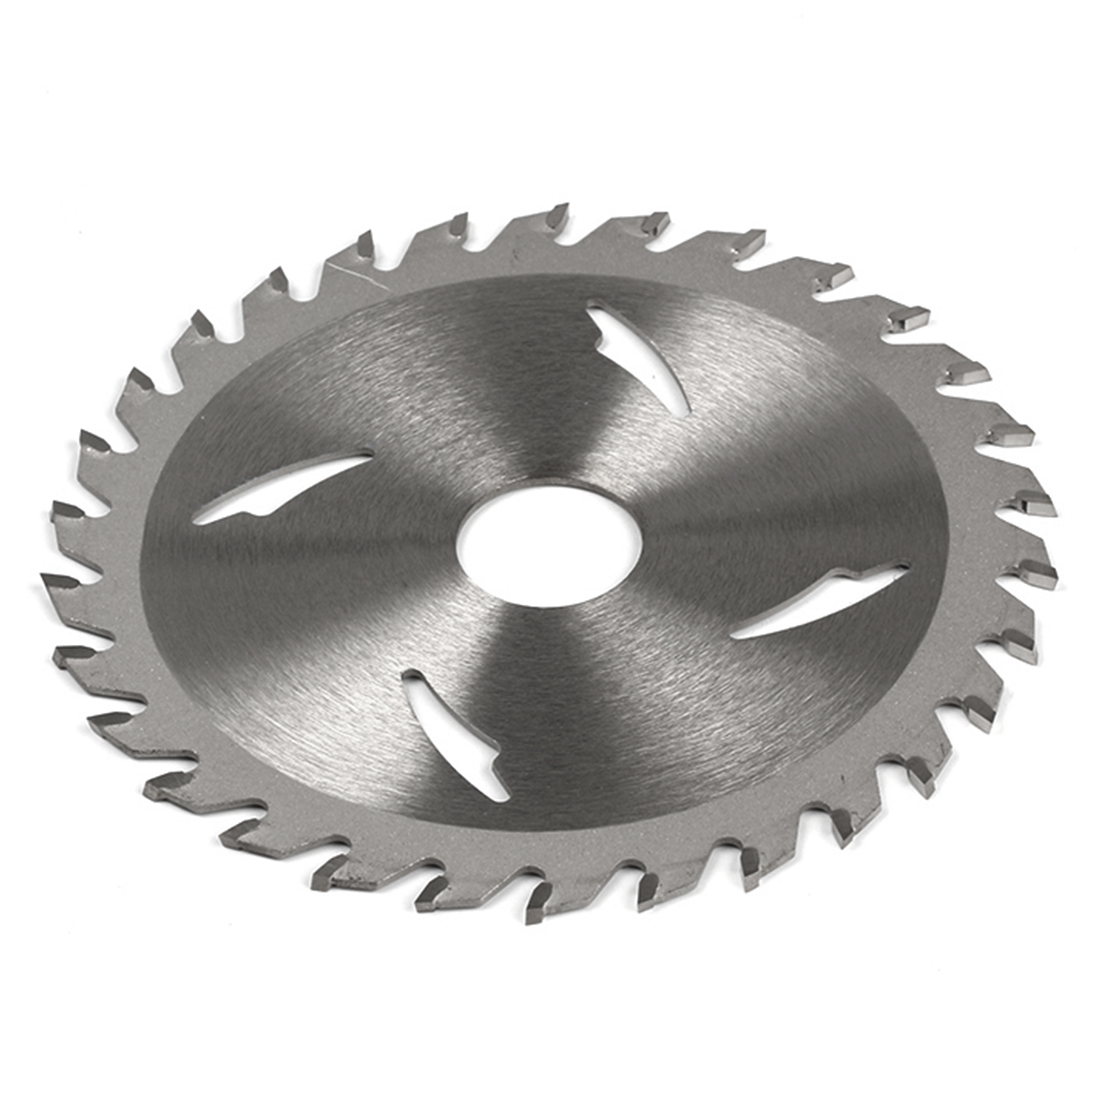 High 1PC 125/110mm*20mm 24T/30T/40T TCT Saw Blade Carbide Tipped Wood Cutting Disc for DIY&Decoration General Wood CuttingHigh 1PC 125/110mm*20mm 24T/30T/40T TCT Saw Blade Carbide Tipped Wood Cutting Disc for DIY&Decoration General Wood Cutting